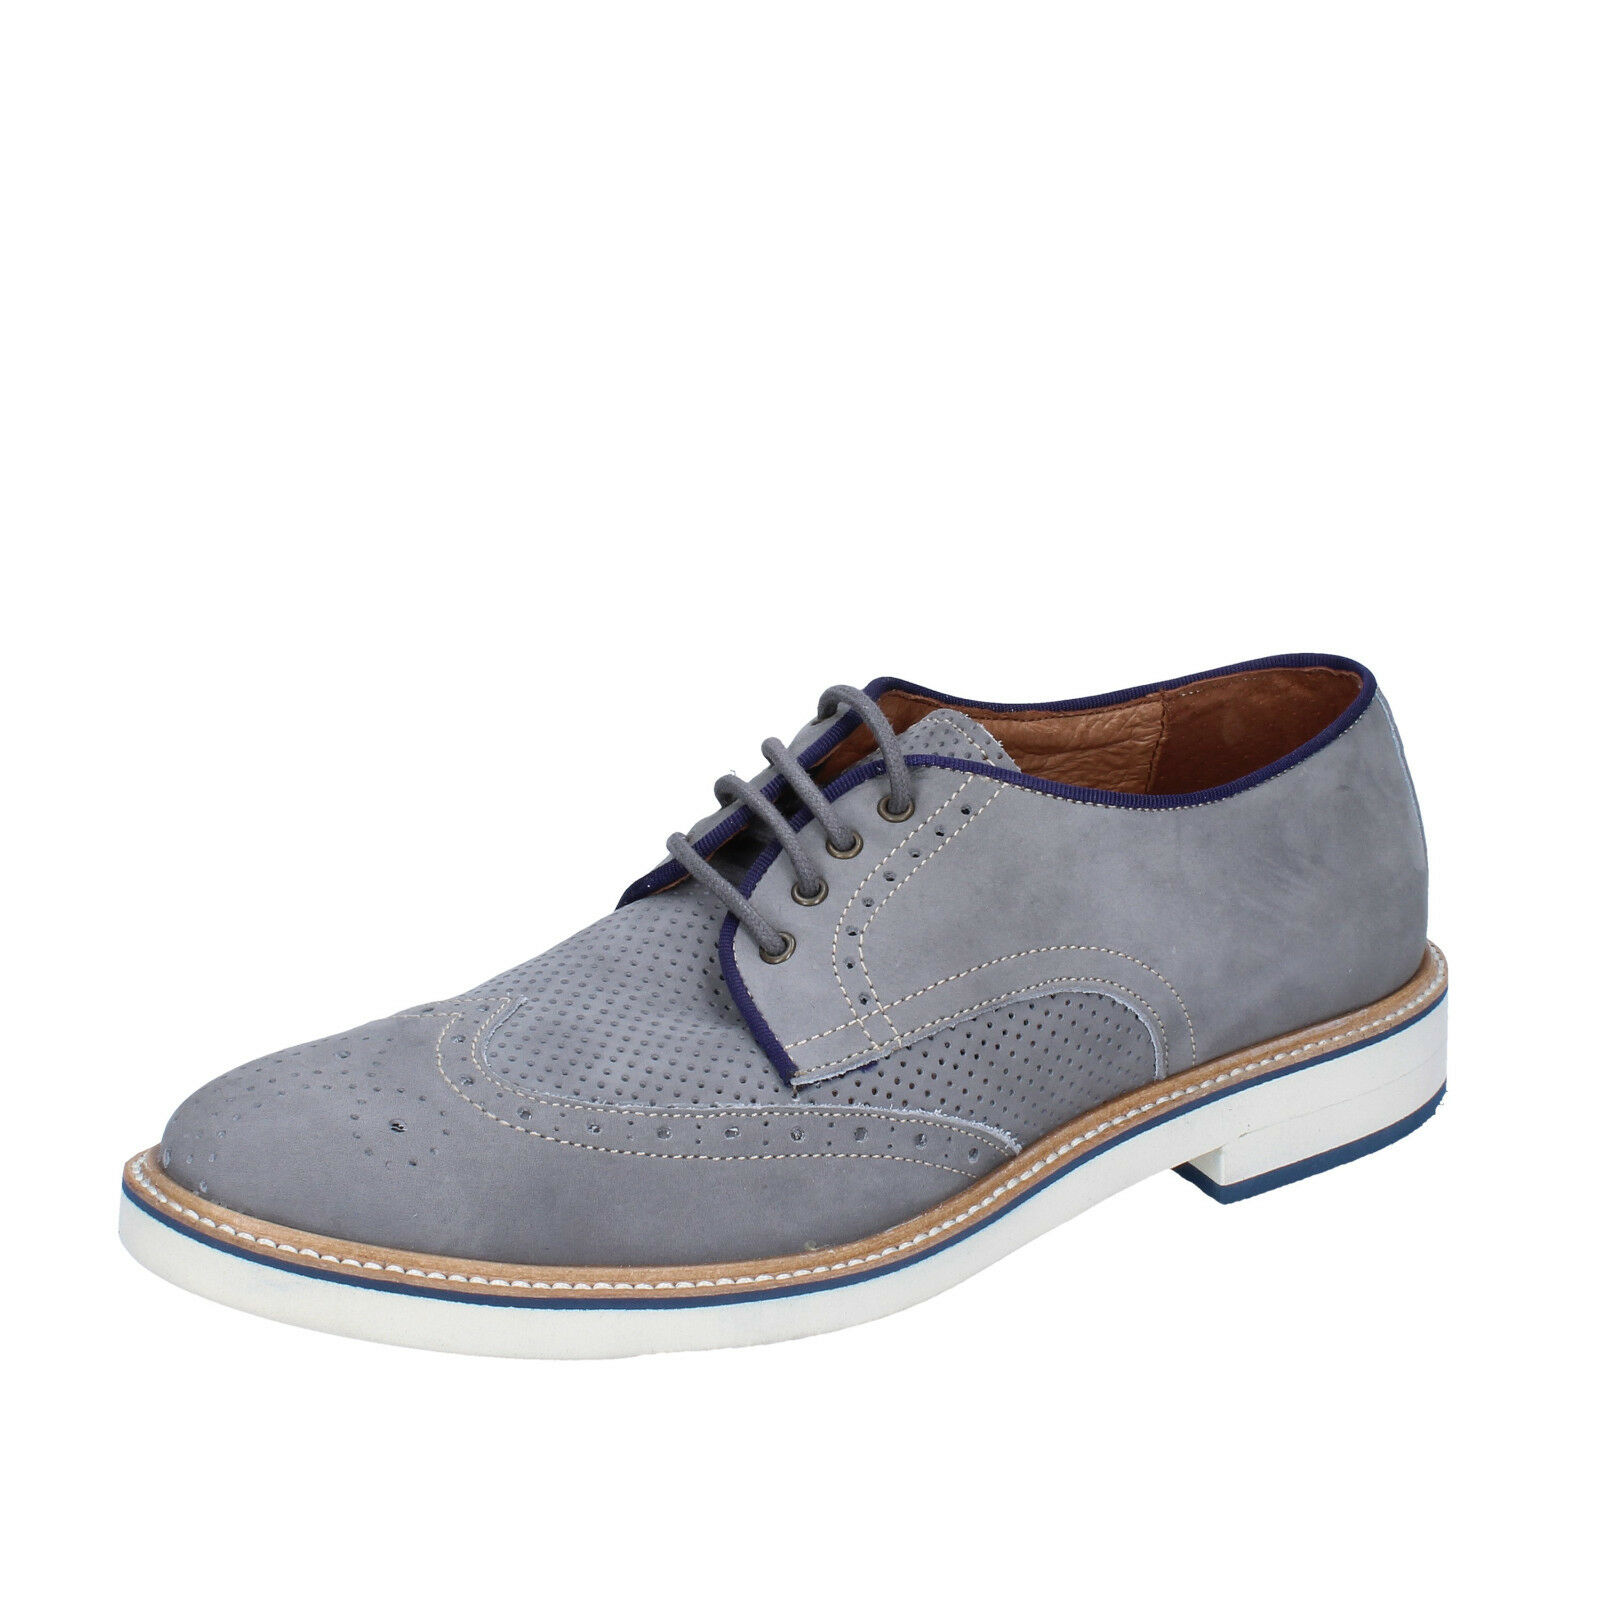 Mens shoes +2 MADE IN ITALY 8 () elegant grey nabuk BT702-42